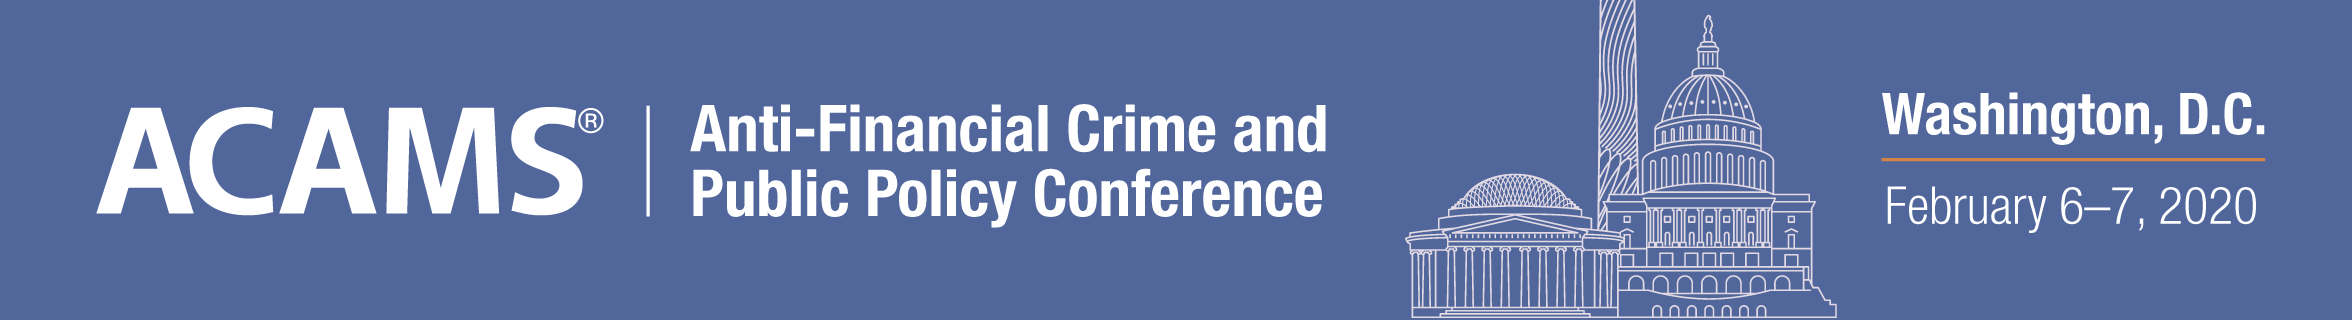 ACAMS Anti-Financial Crime and Public Policy Conference